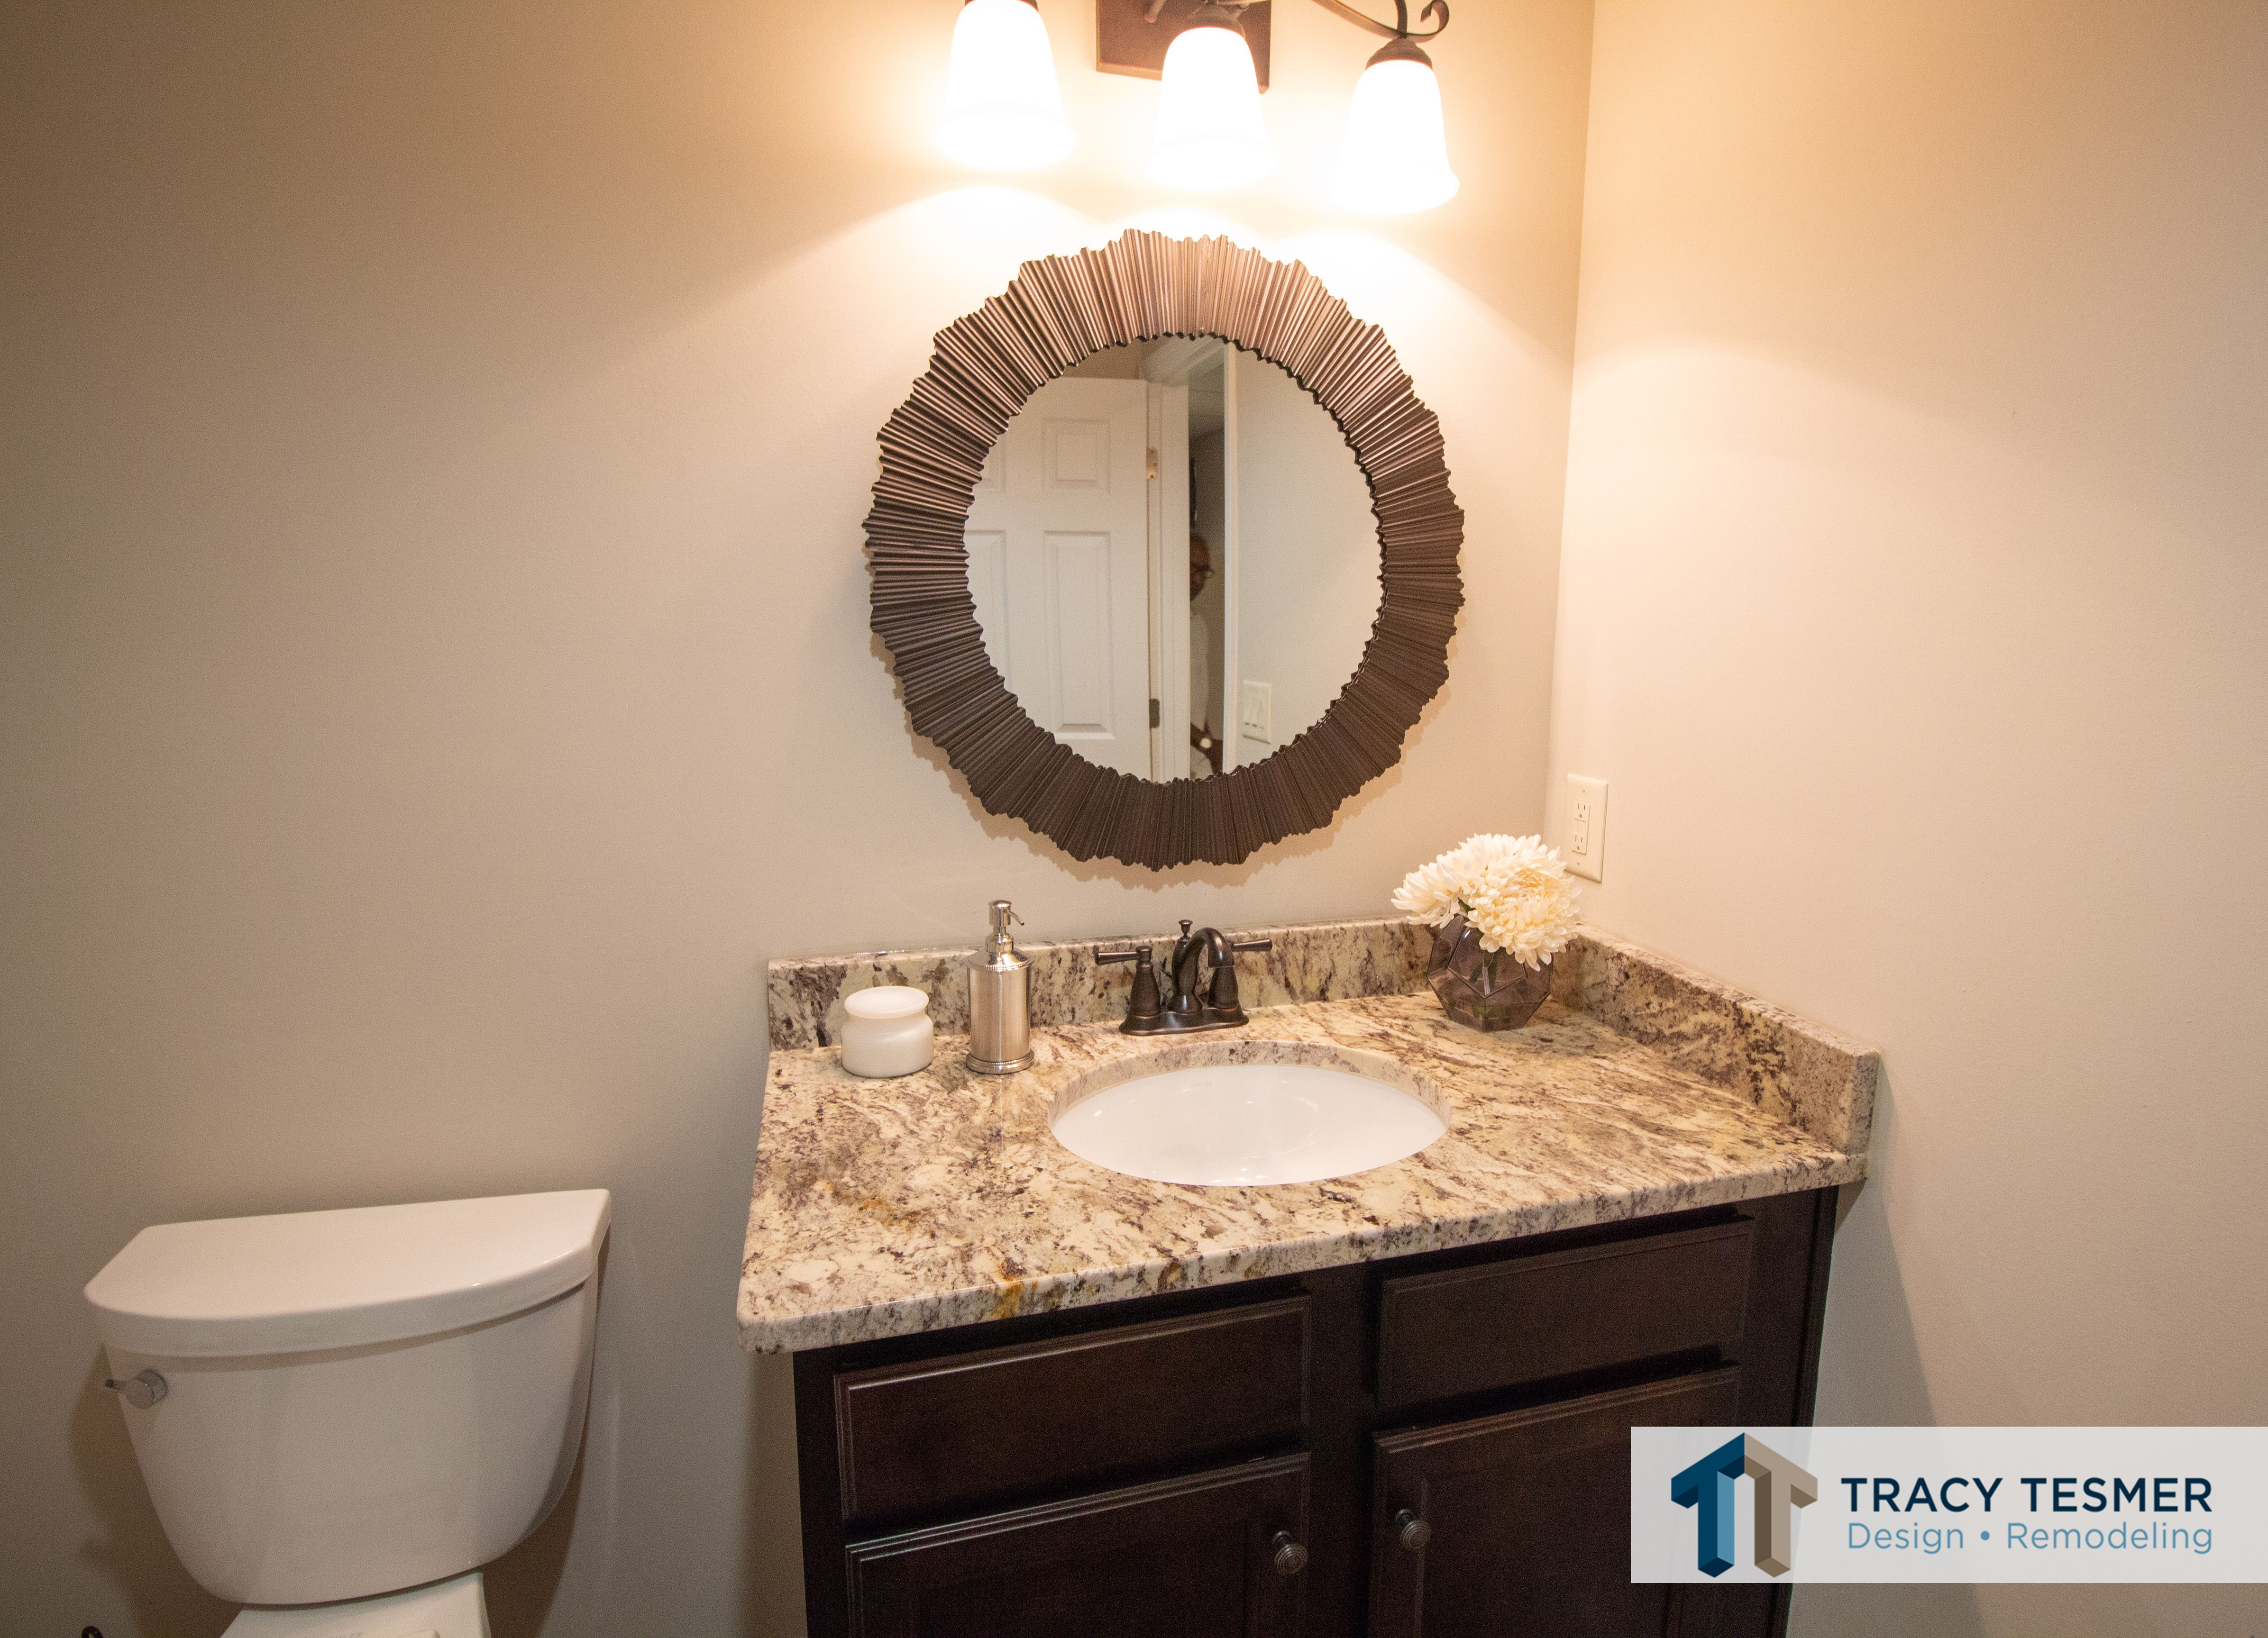 Adding A Small Bathroom To Your Basement Can Really Improve Home Value With A Small Shower And Home Remodeling Contractors Basement Remodeling Home Remodeling